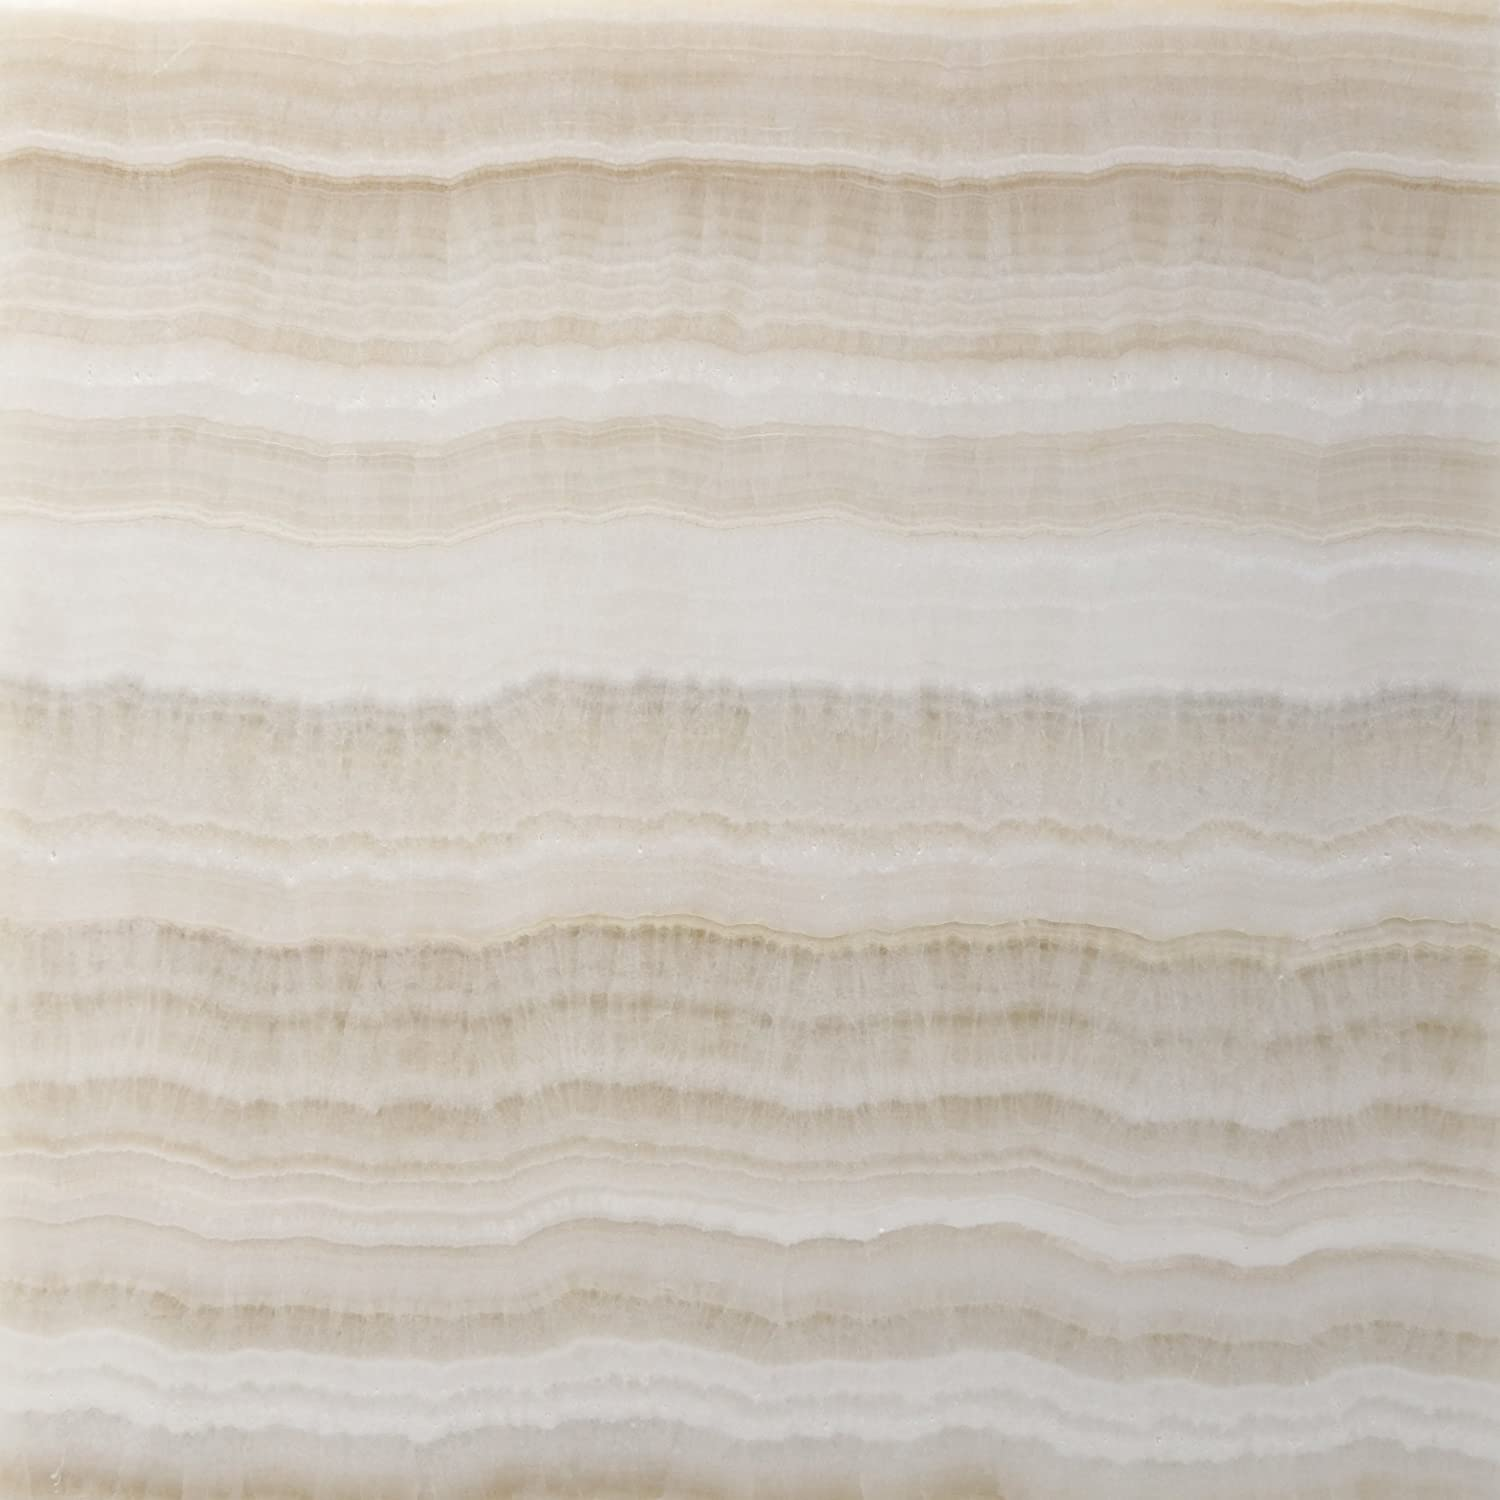 Premium White Onyx VEIN-CUT 12 X 12 Polished Tile - Box of 5 sq. ft ...